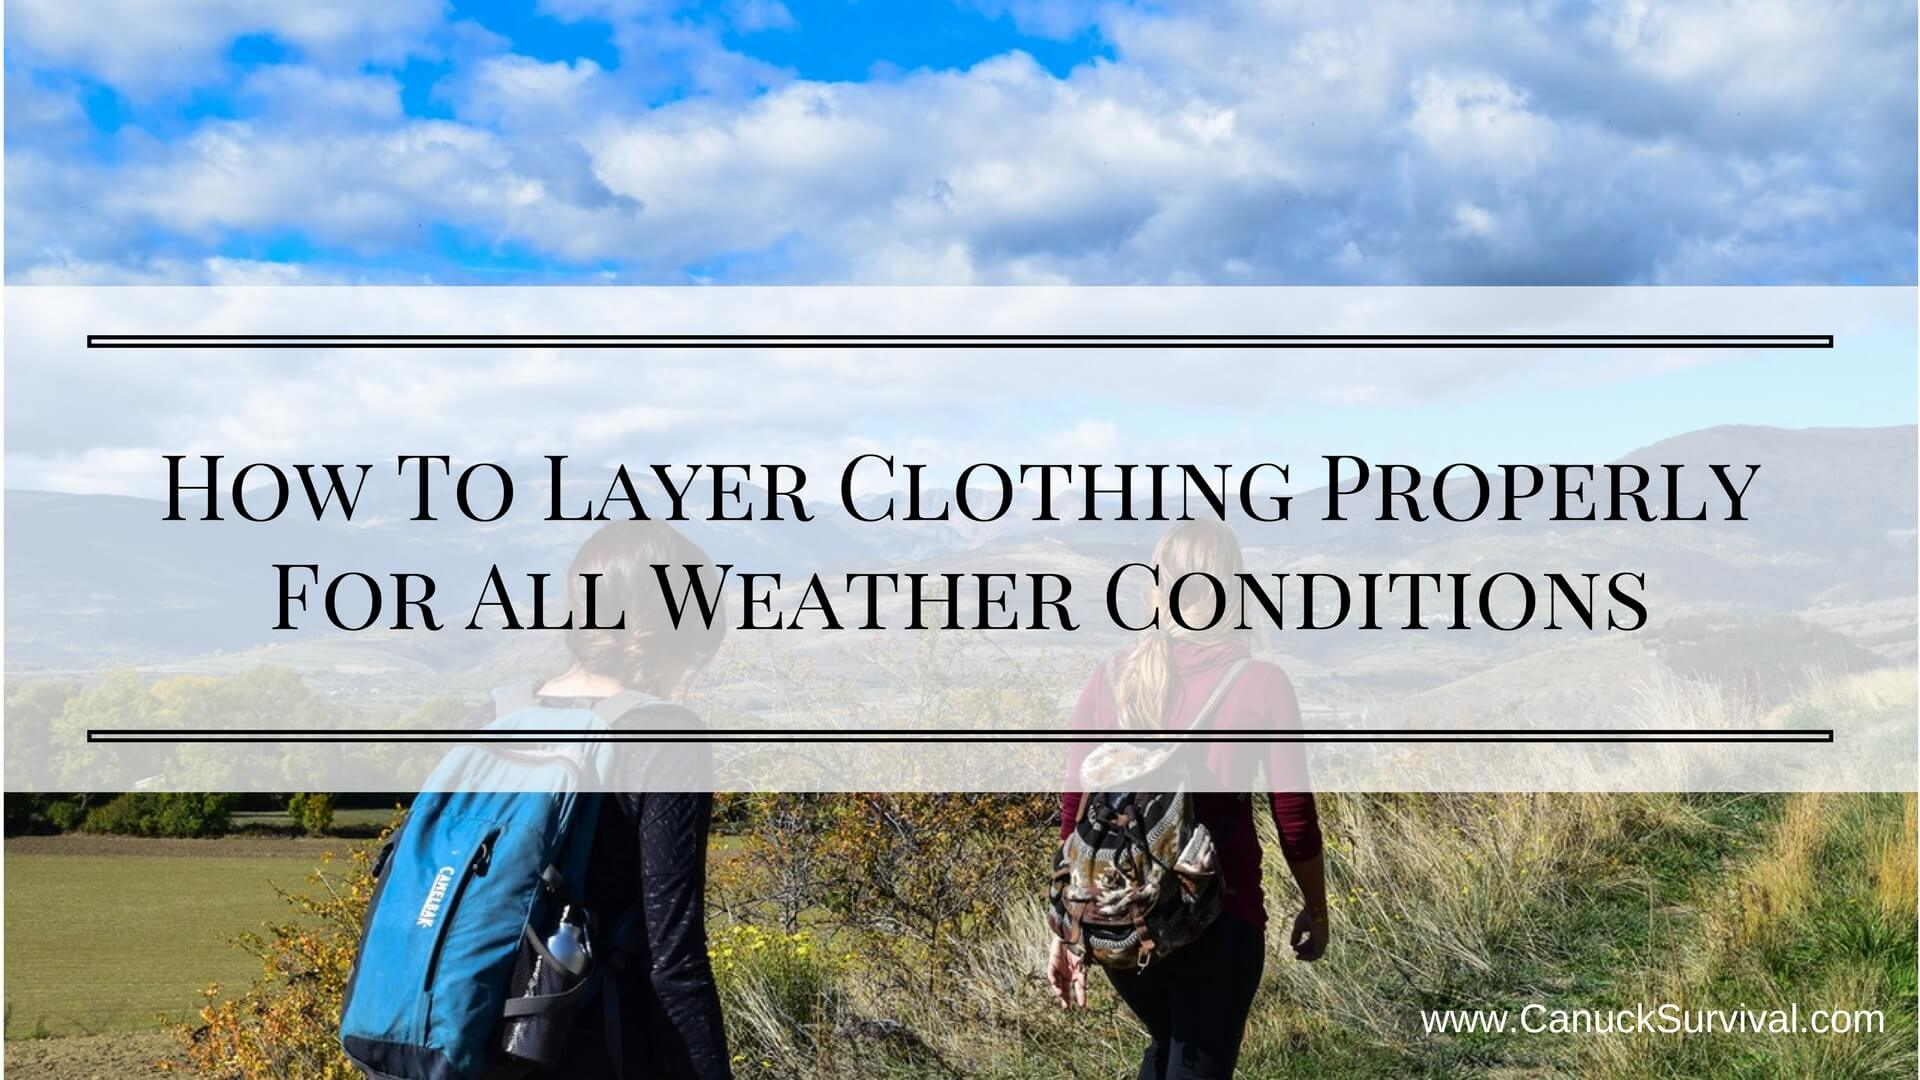 How To Layer Clothing For All Weather Conditions